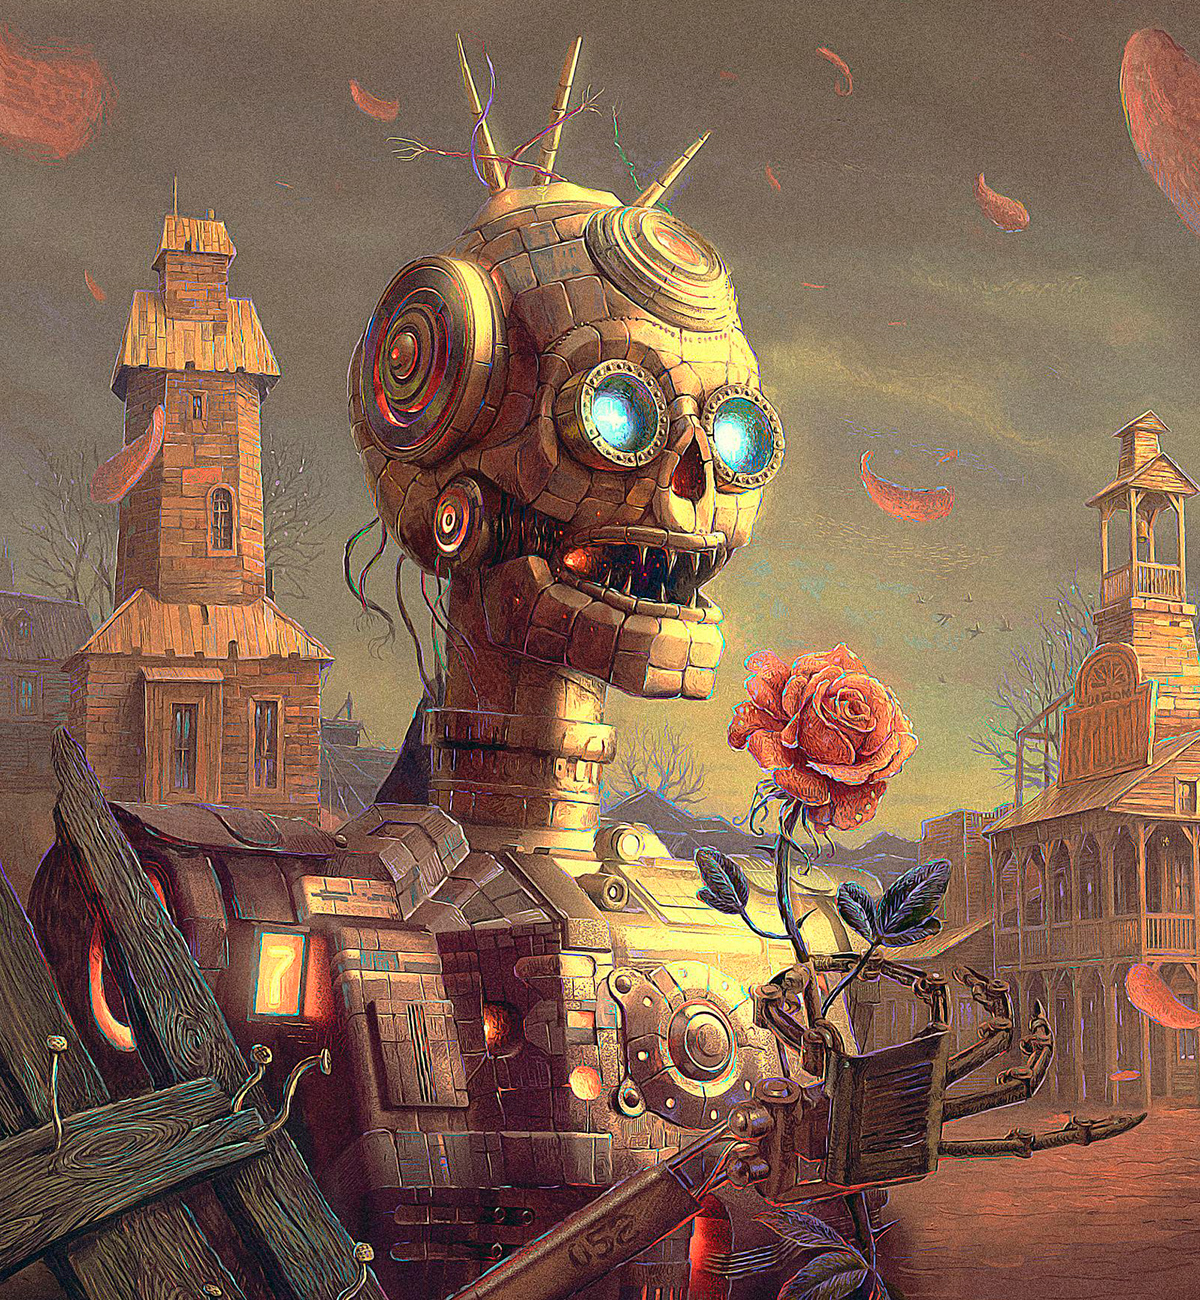 Andrew Ferez artwork